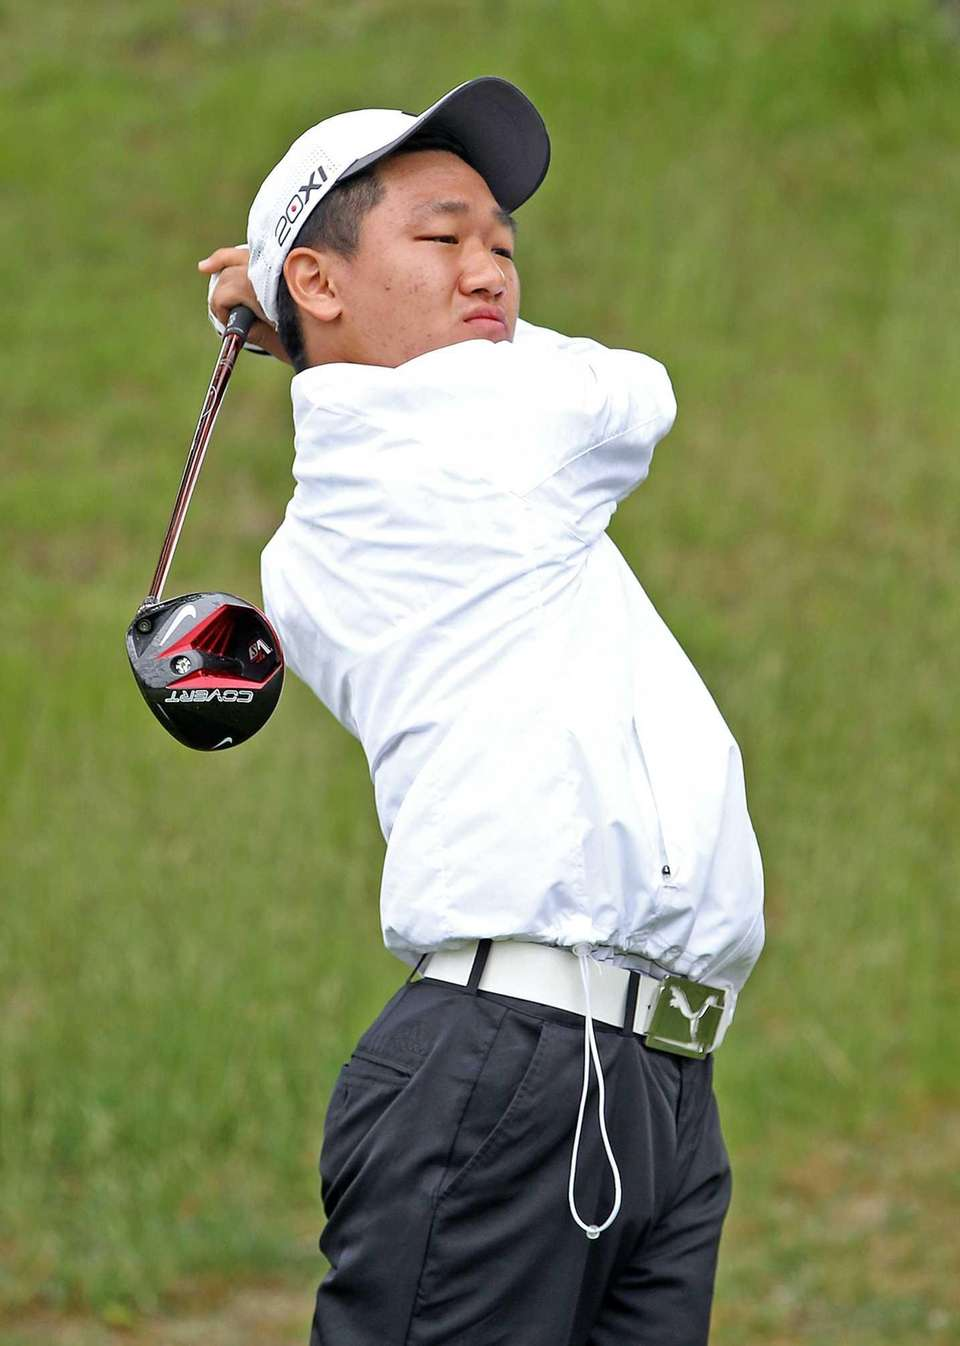 Sewanhaka's Chris Yeom follows through on a drive